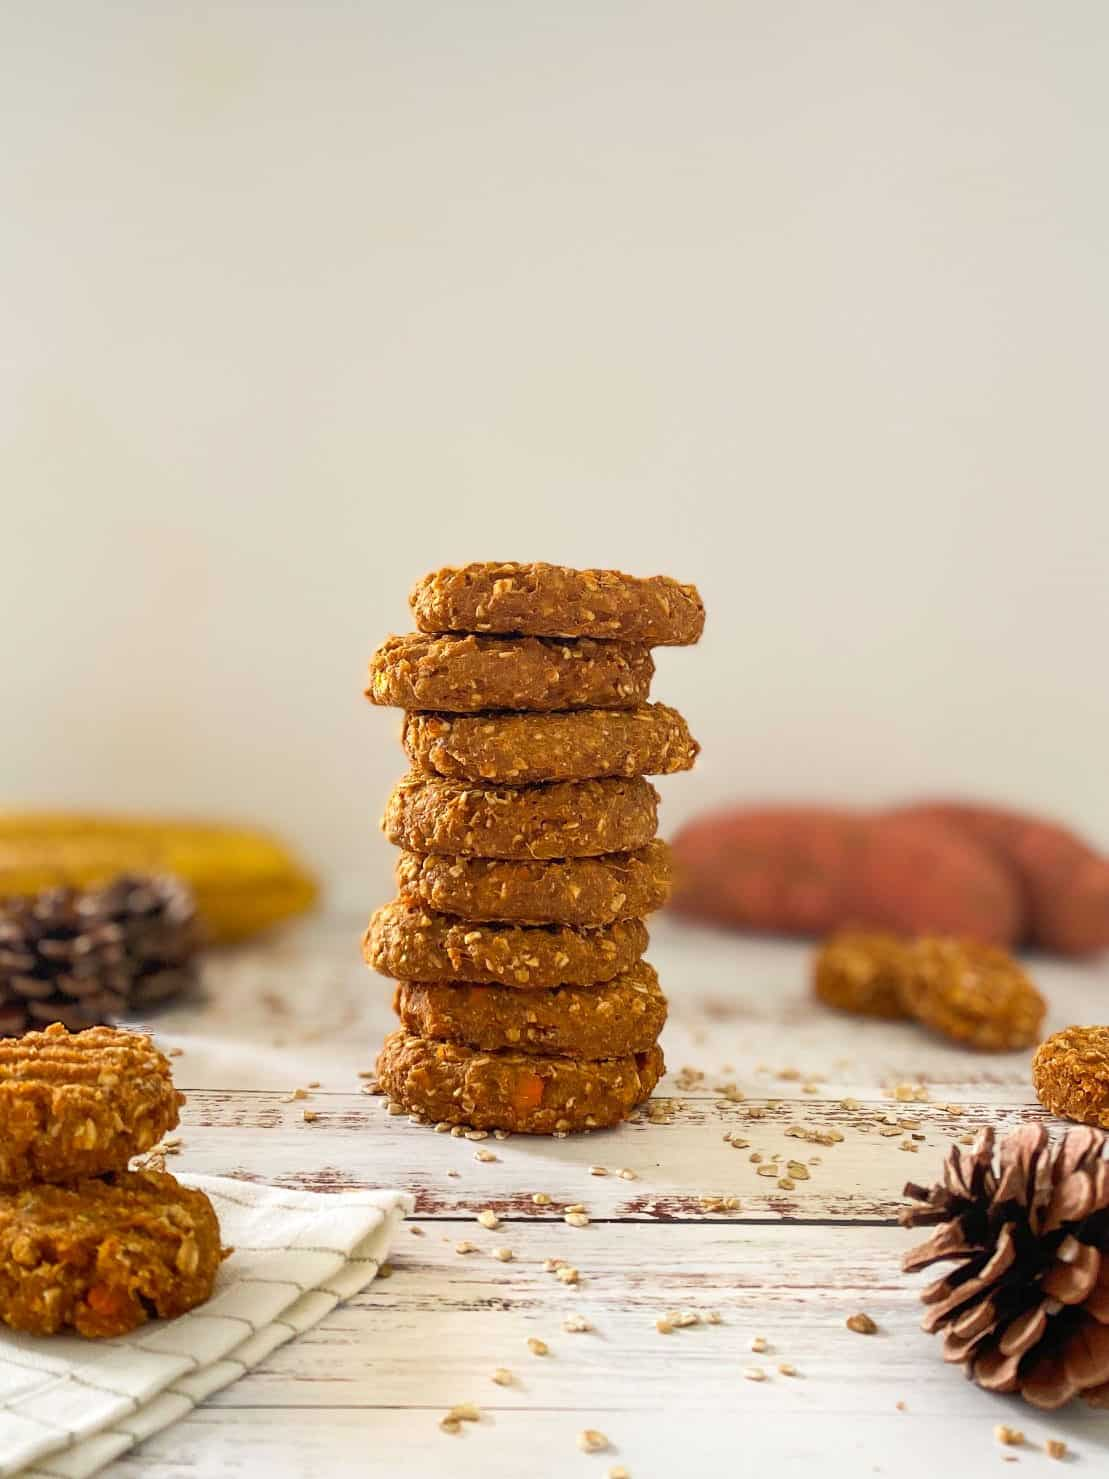 Tall stack of sweet potato cookies with more cookies scattered around it and bananas in the background.